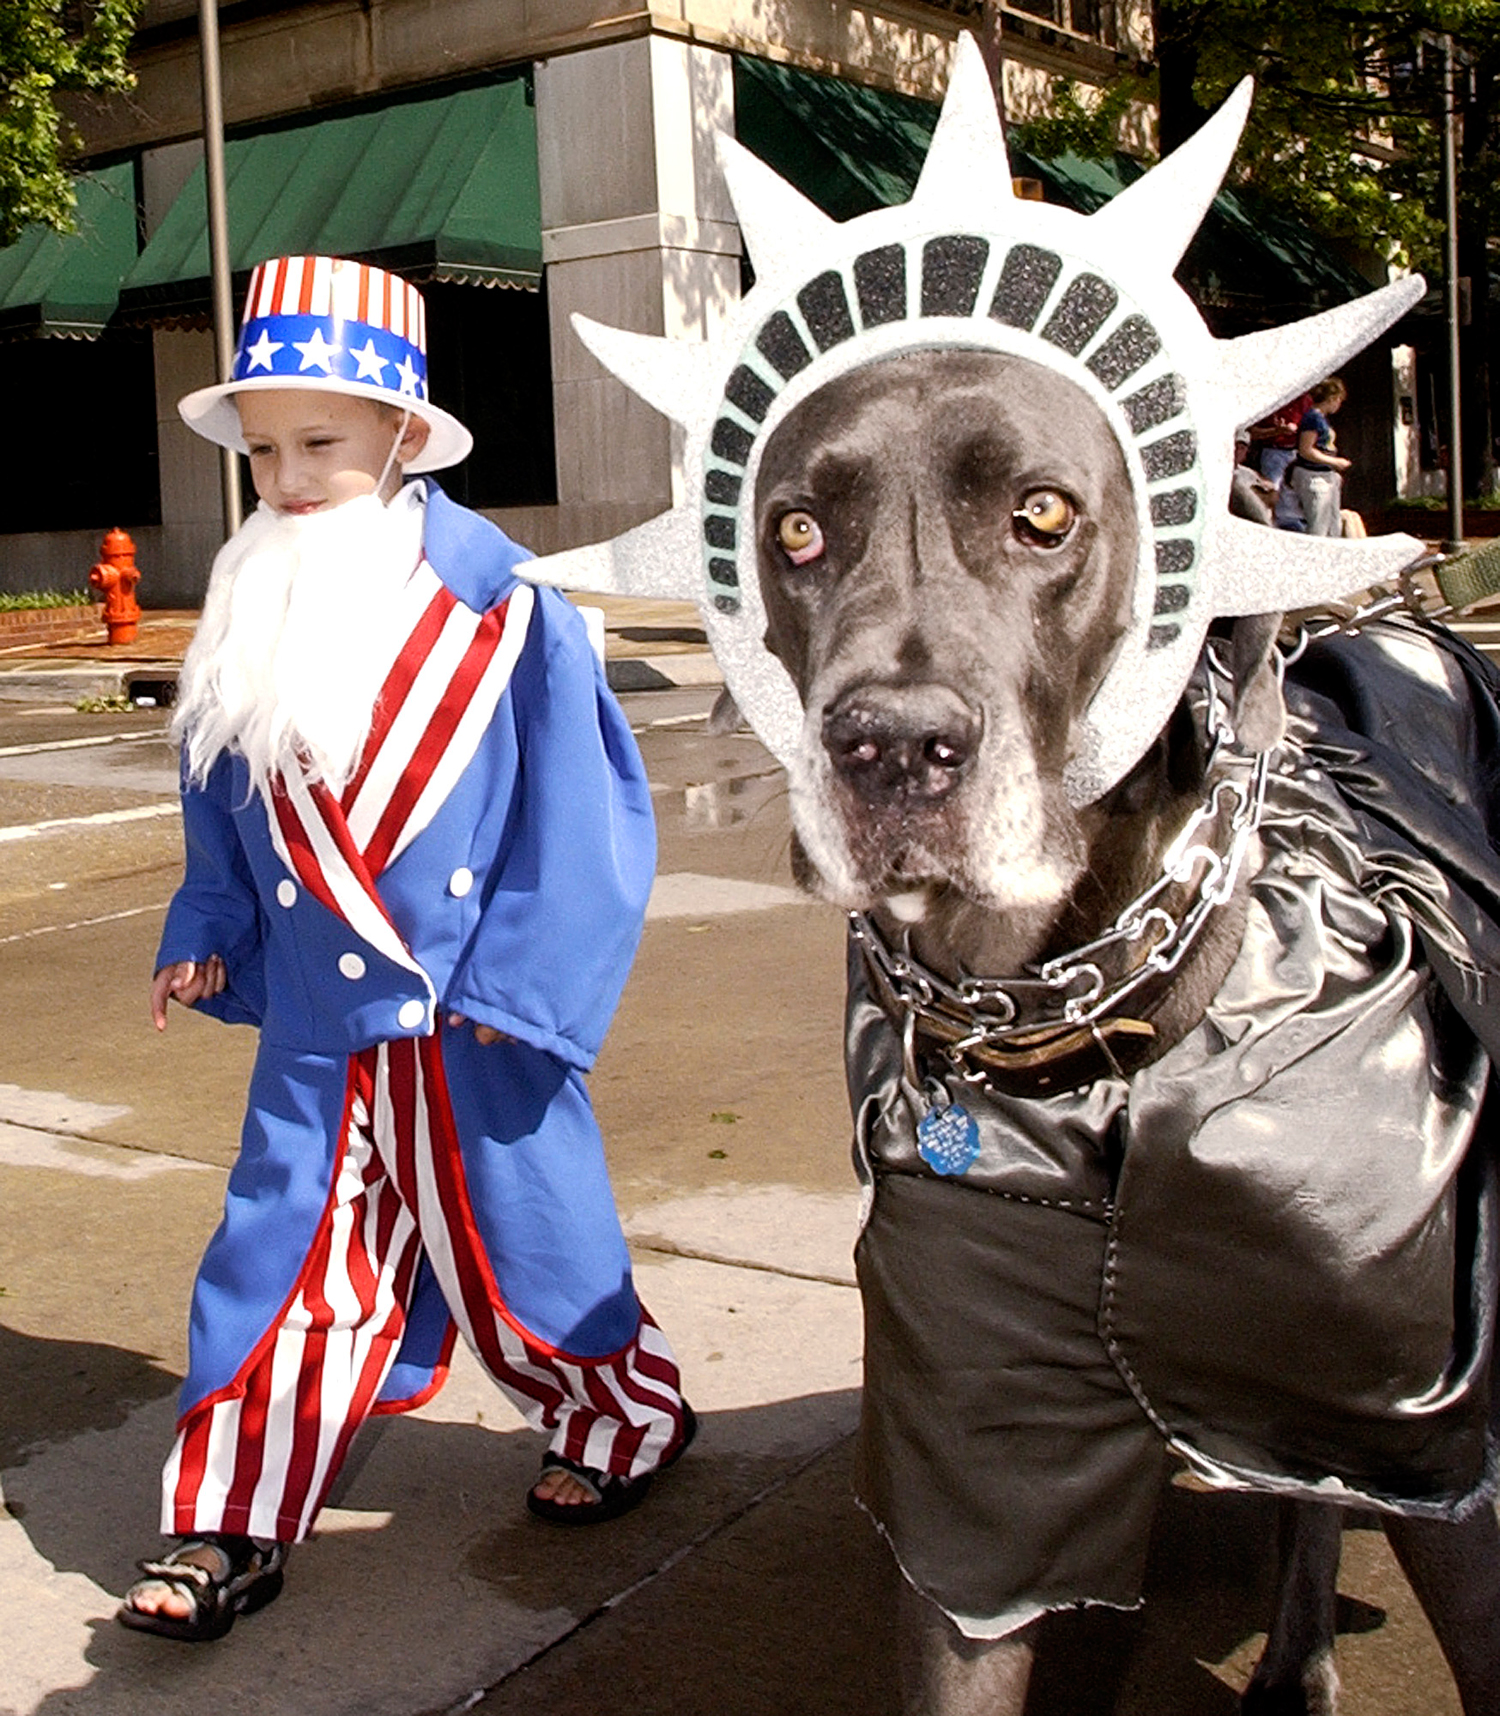 Zachary Harris, 5, of Moore, Okla., dressed as Uncle Sam, walks with his dog, Brutus, dressed as  Lady Liberty  in the Downtown Salute Parade, July 4, 2005, in Oklahoma City, as part of the parade's Most Patriotic Dog Competition.